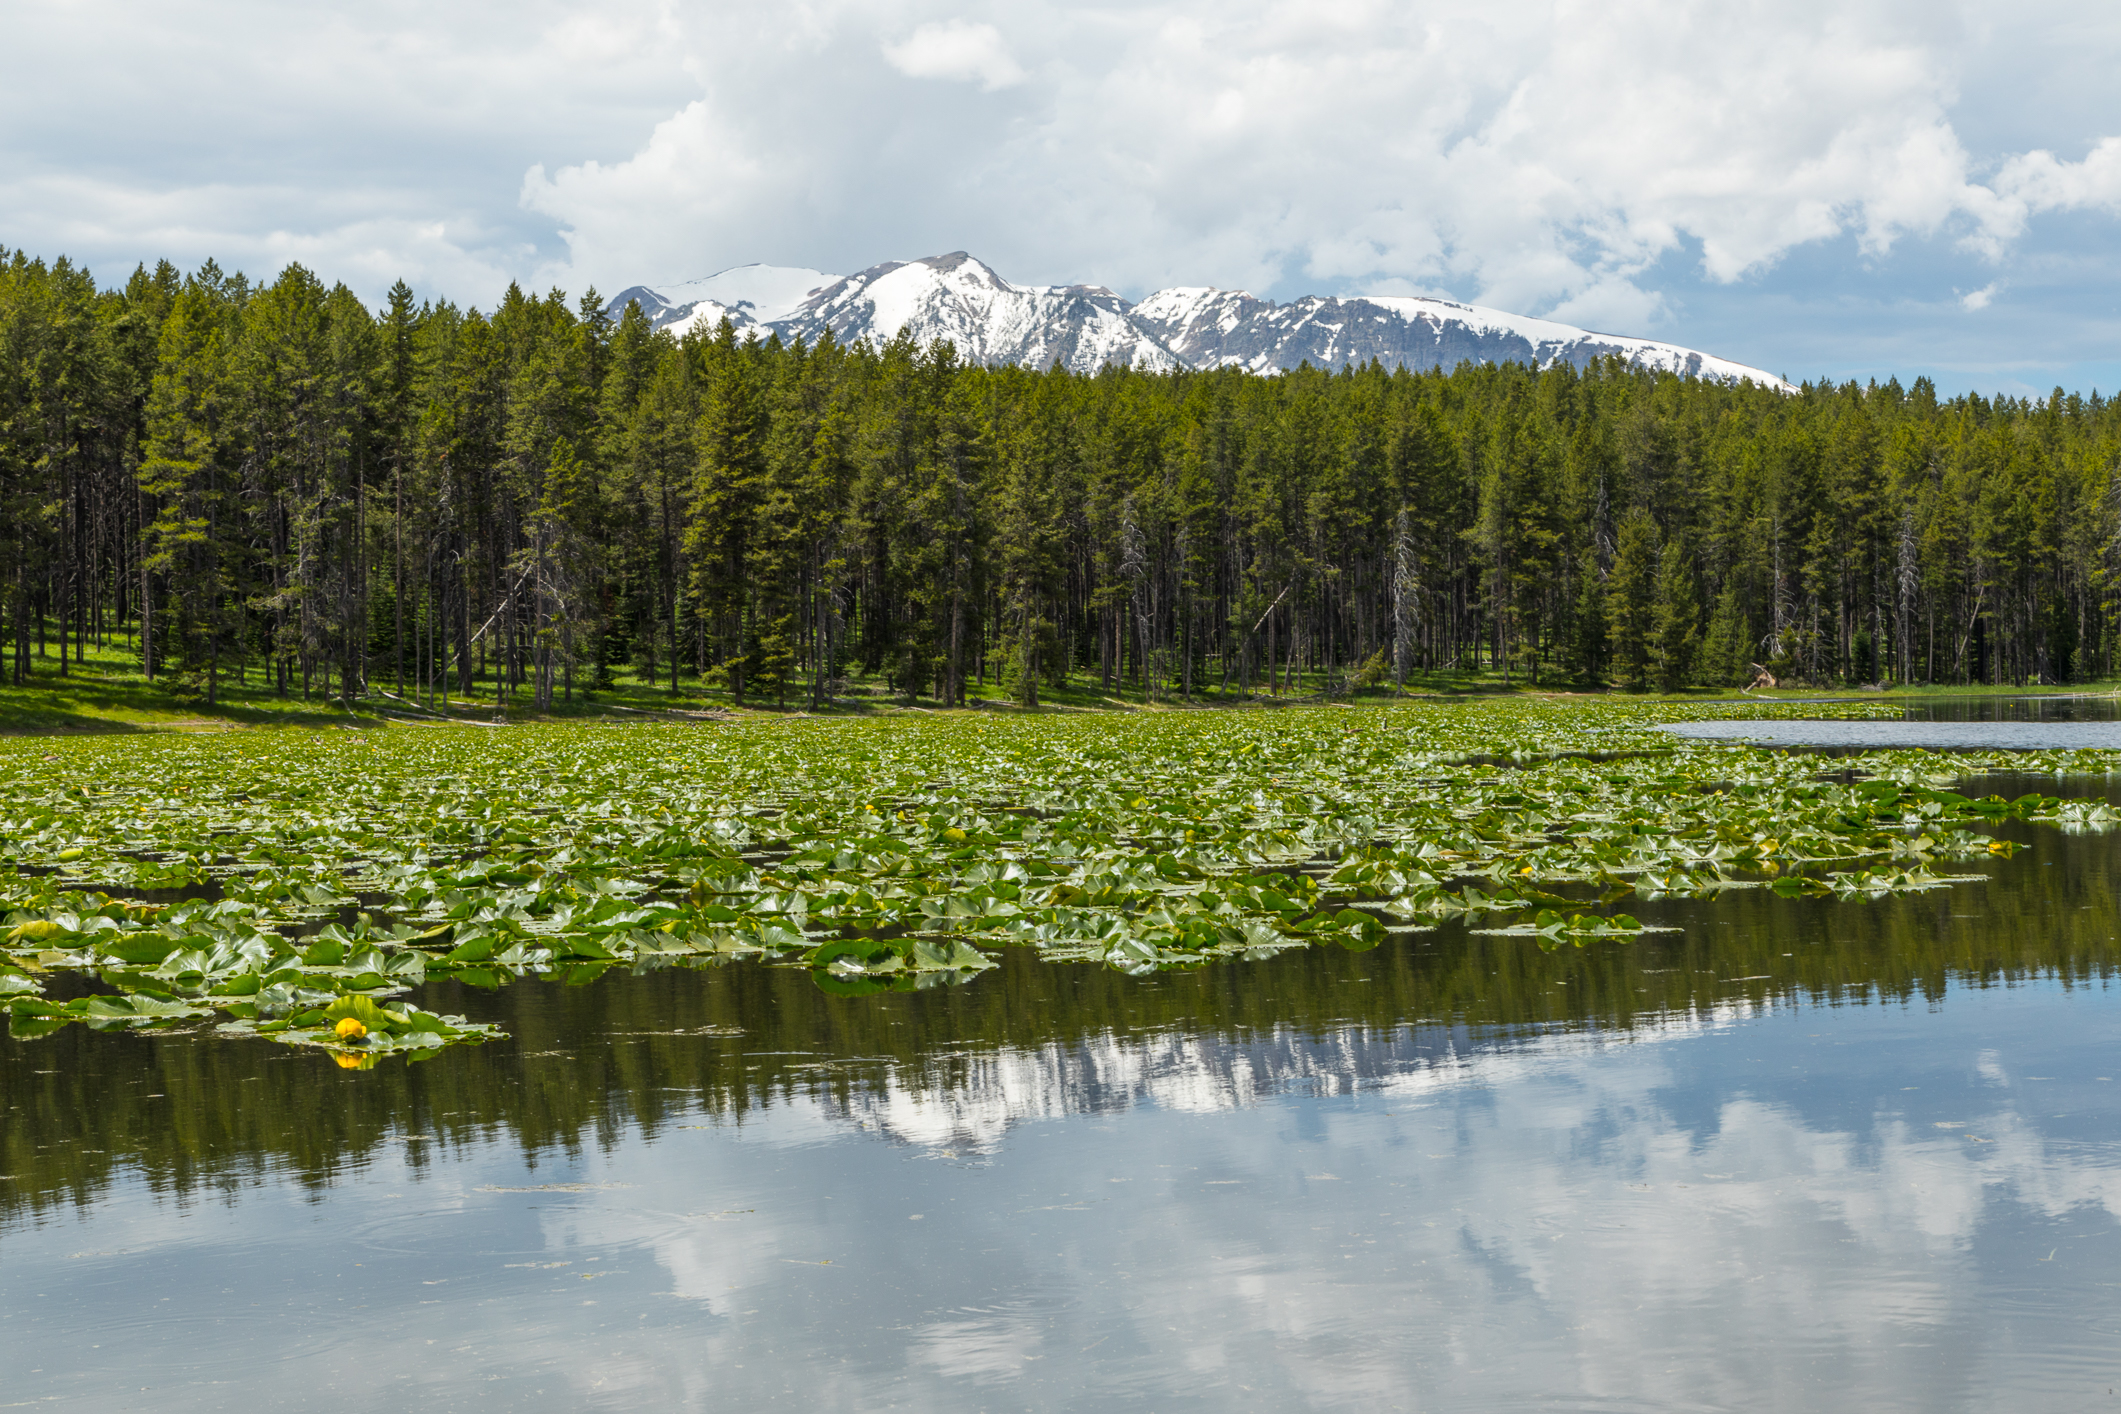 Colter Bay, Image # 2957